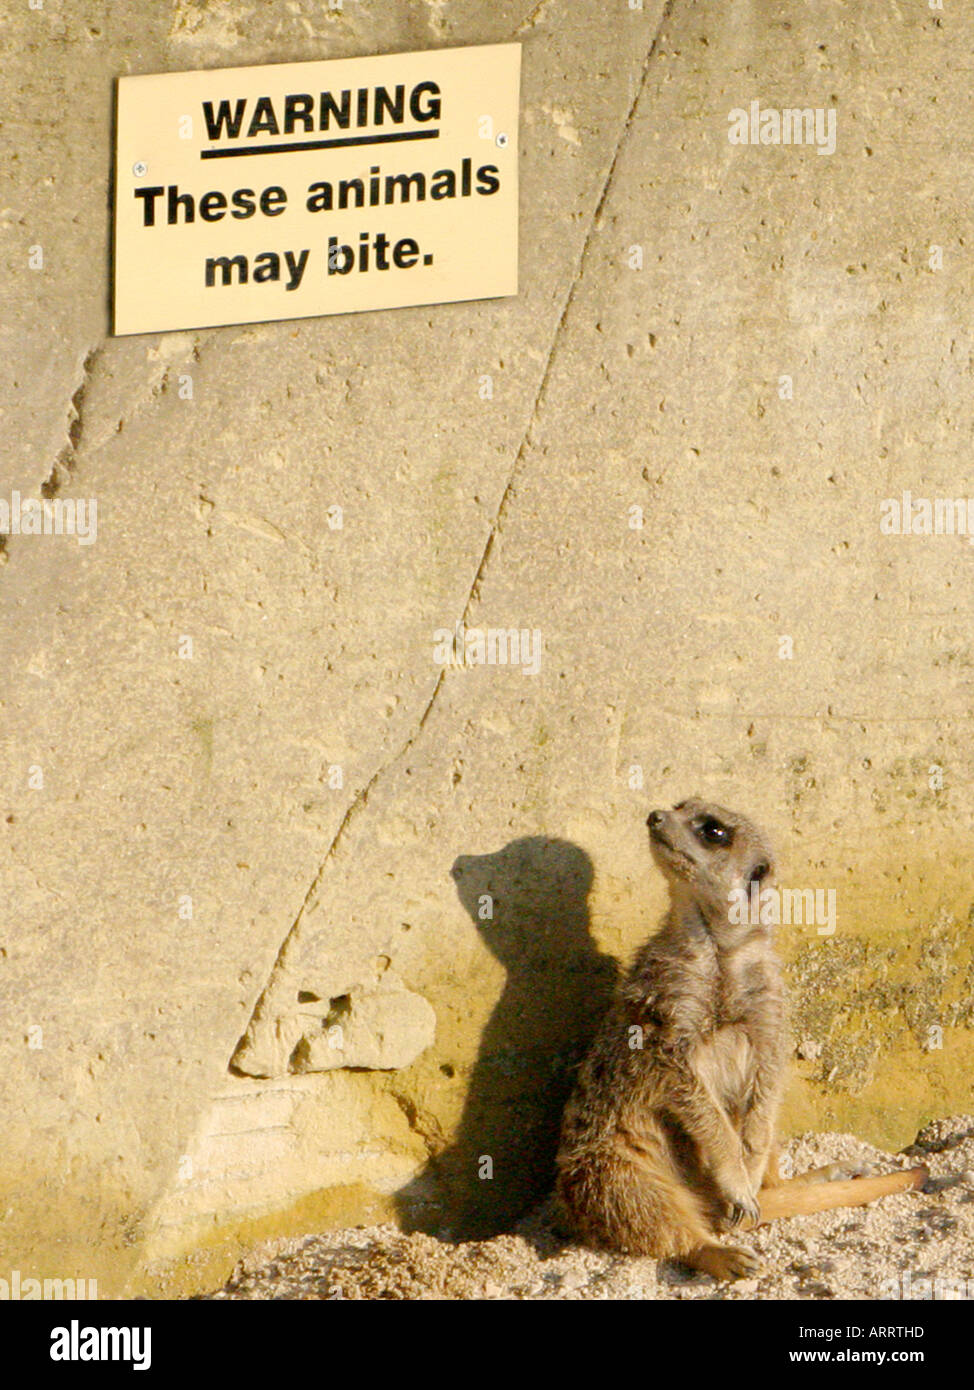 A meercat looking at a sign - these animals may bite. - Stock Image